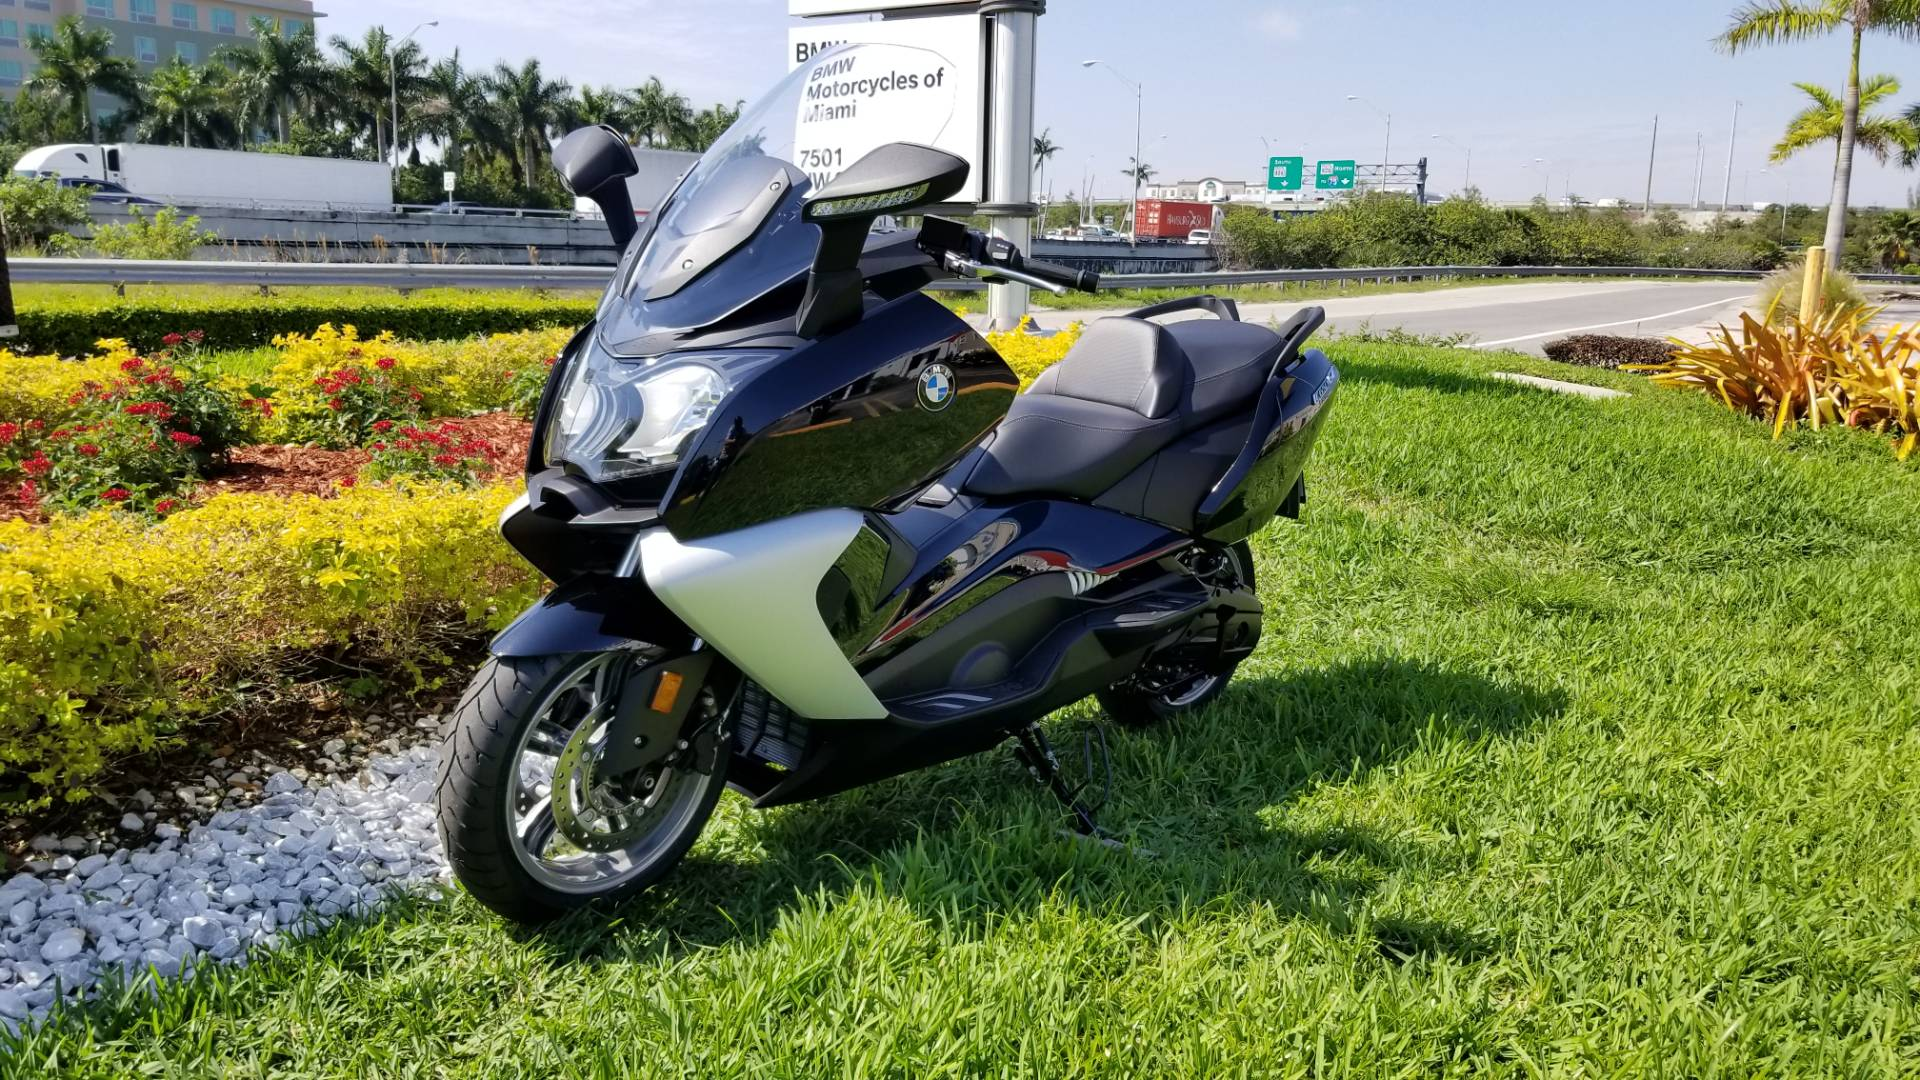 New 2019 BMW C 650 GT for sale, BMW C 650GT for sale, BMW Motorcycle C650GT, new BMW Scooter, Maxi Scooter, BMW. BMW Motorcycles of Miami, Motorcycles of Miami, Motorcycles Miami, New Motorcycles, Used Motorcycles, pre-owned. #BMWMotorcyclesOfMiami #MotorcyclesOfMiami #MotorcyclesMiami - Photo 5